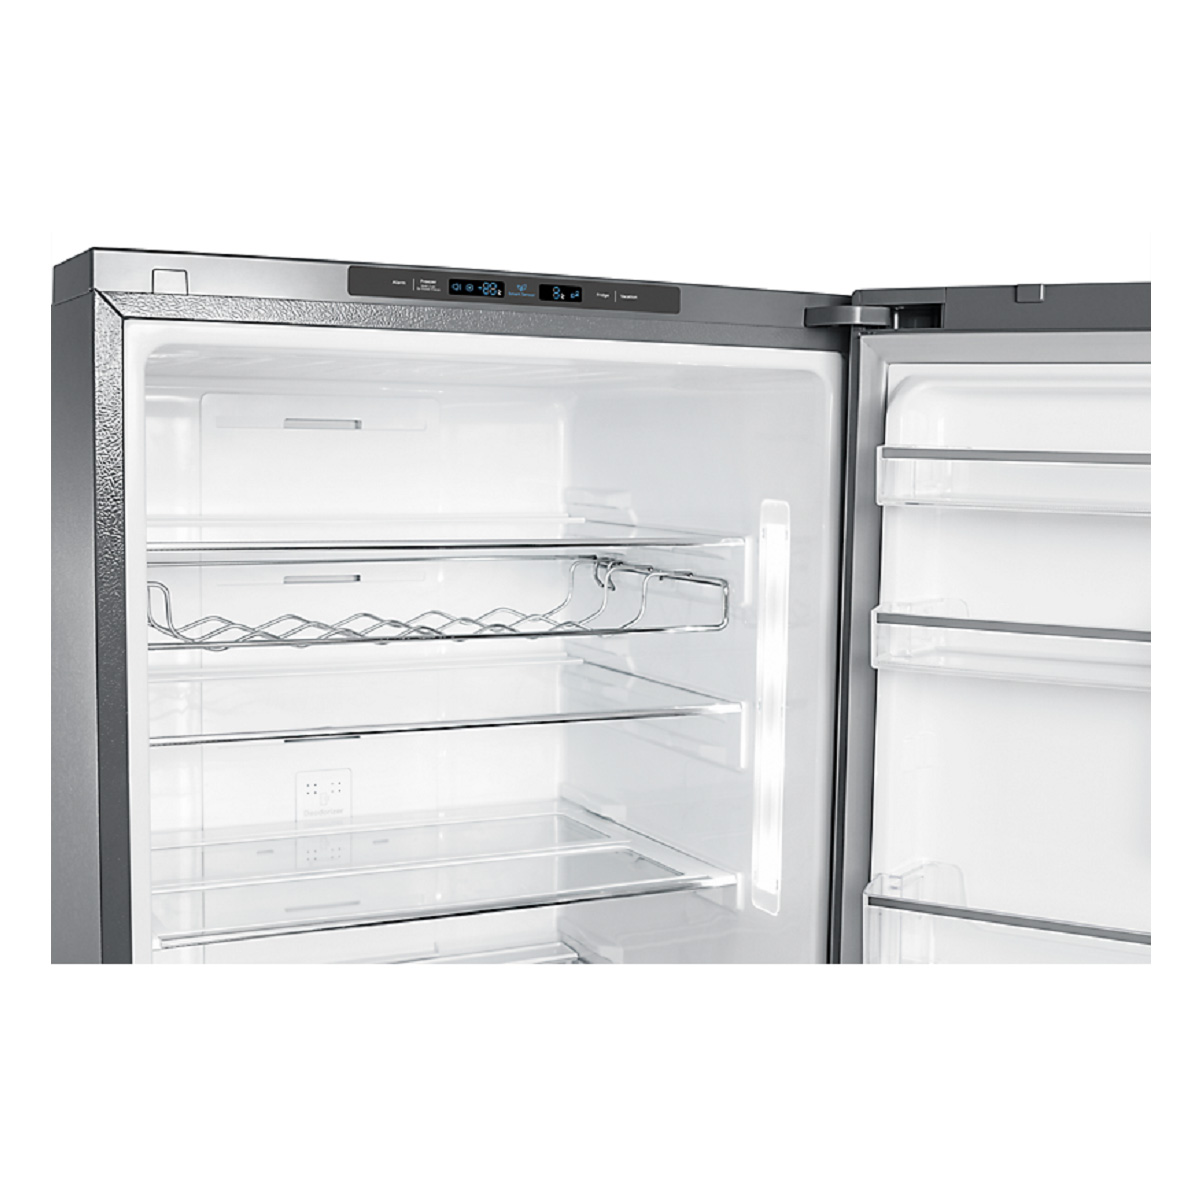 Samsung SRL458ELS 458Litres Bottom Mount Fridge 35960